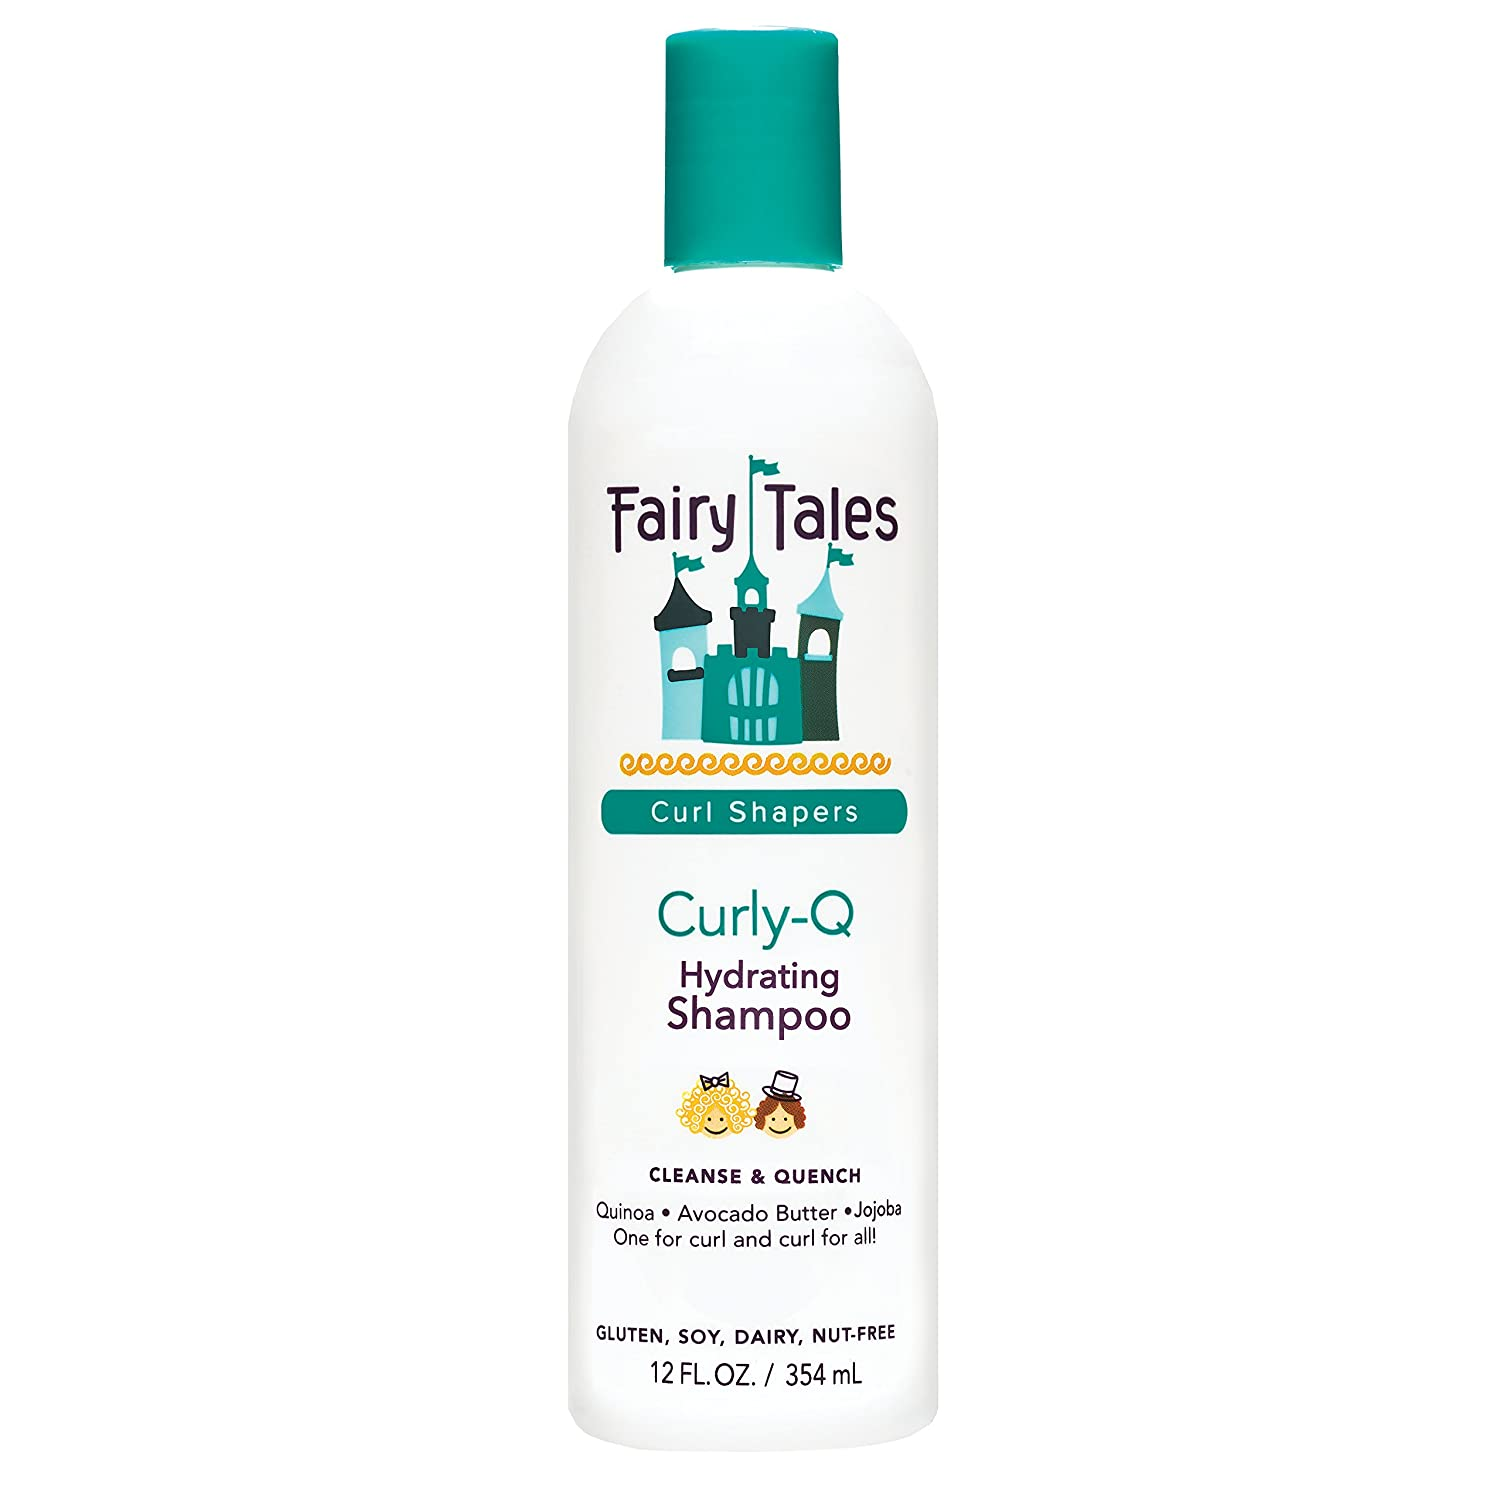 Fairy Tales Curly-Q Daily Hydrating Shampoo for Kids